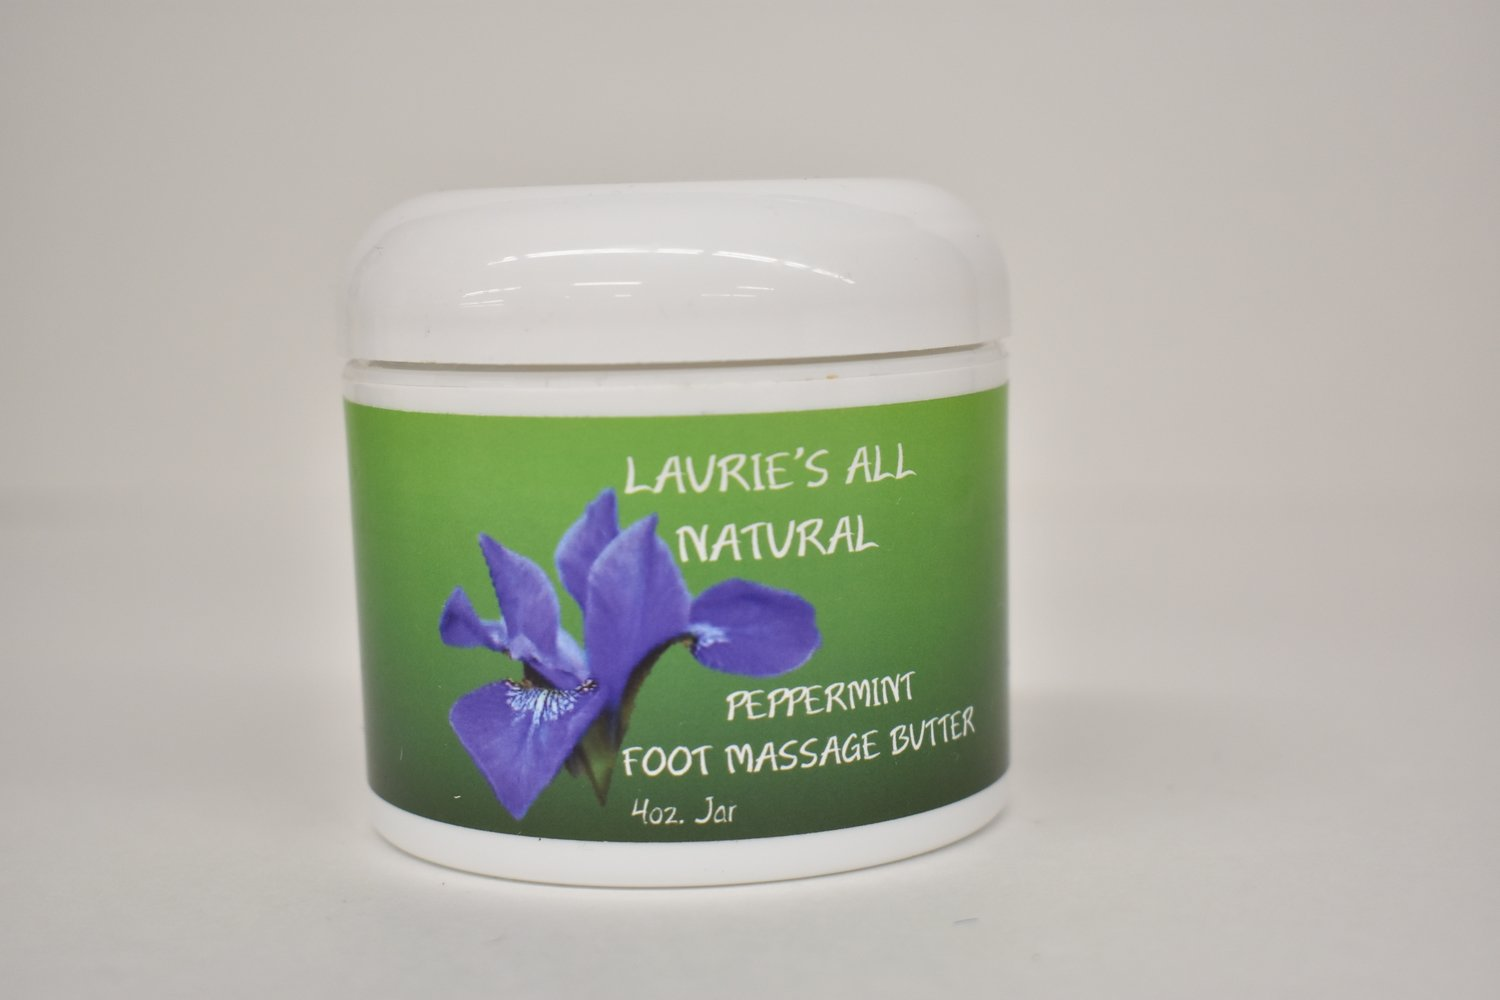 Laurie's All Natural Peppermint Foot Massage Butter 4oz